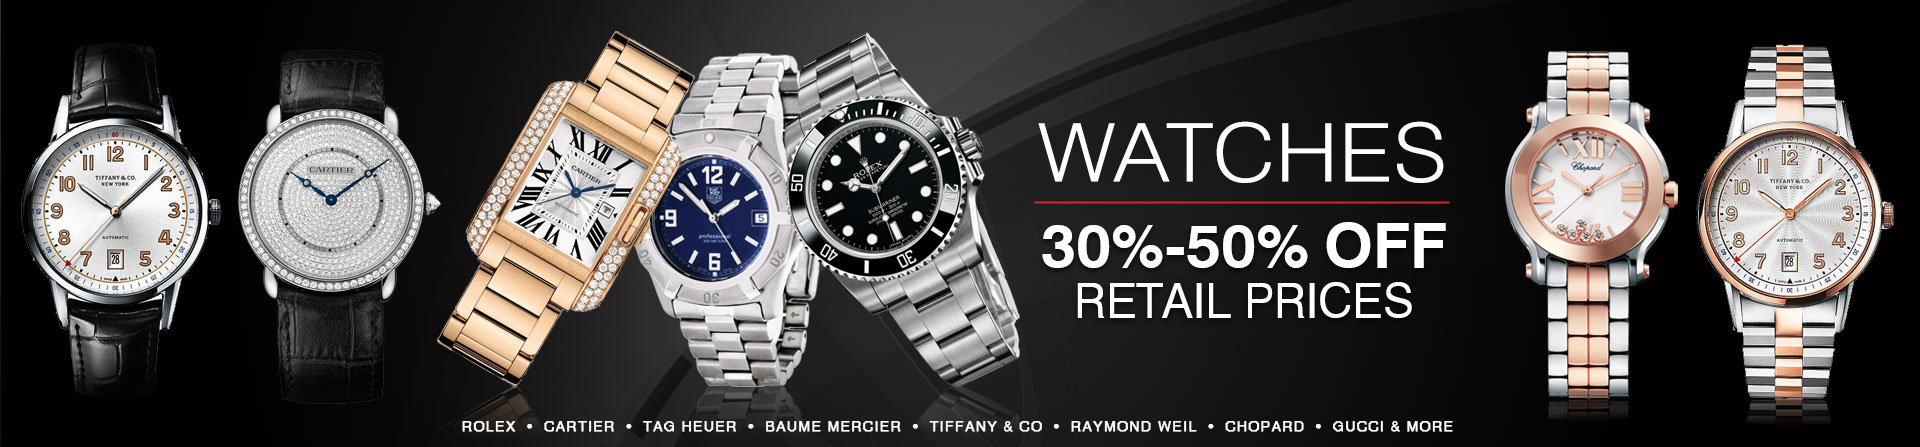 WATCHES 30% to 50% OFF RETAIL PRICE!